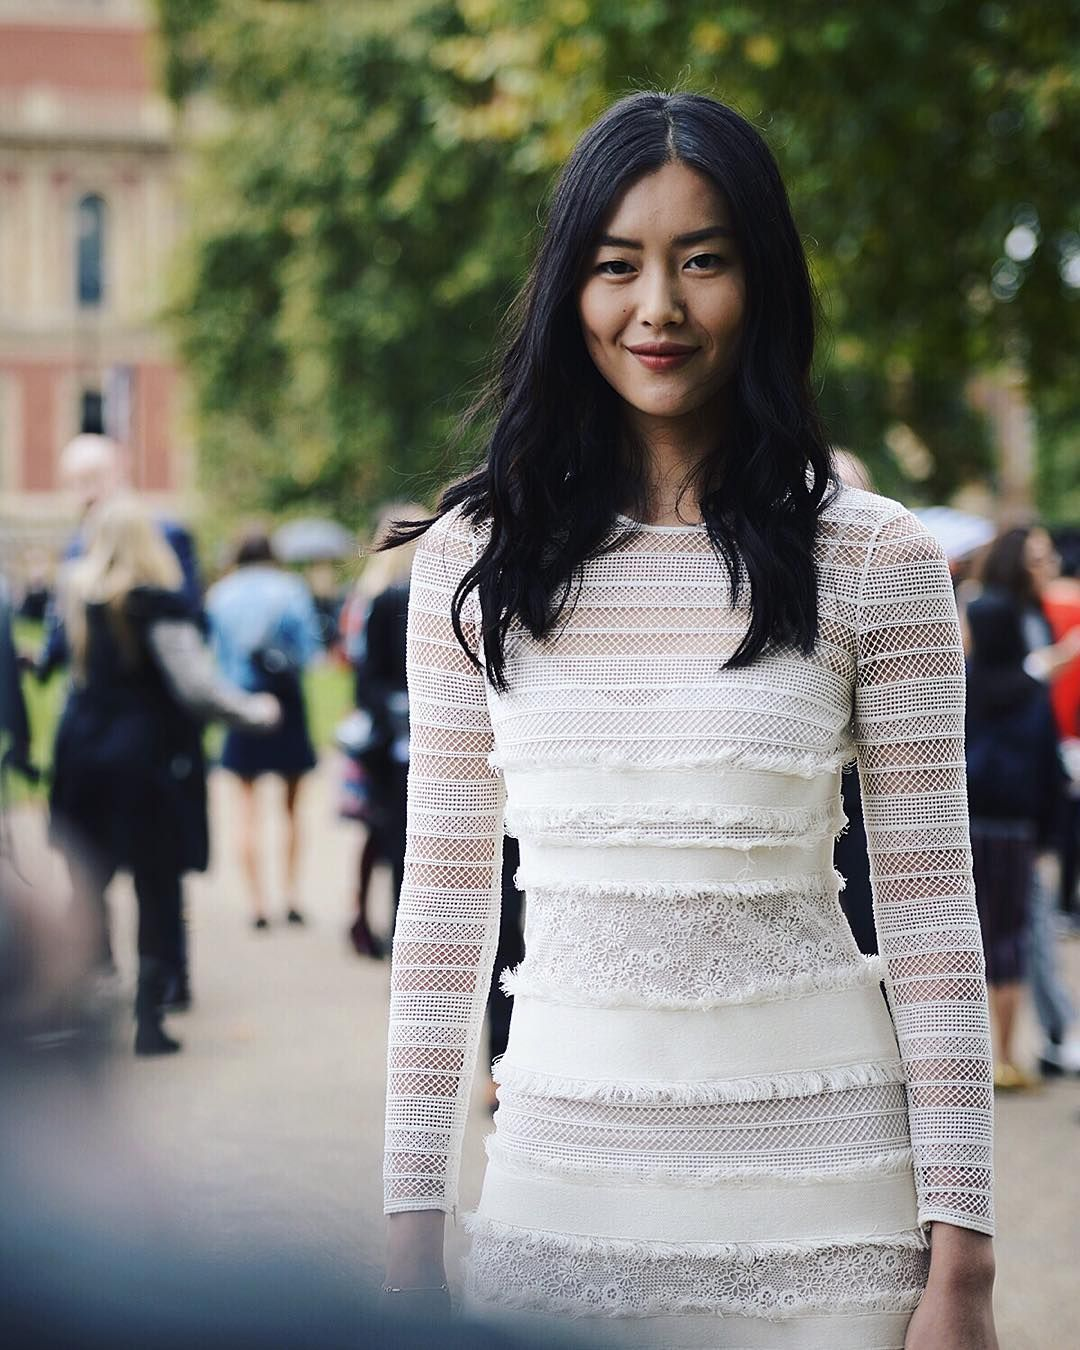 Liu Wenin London for the Burberry Show during LFW